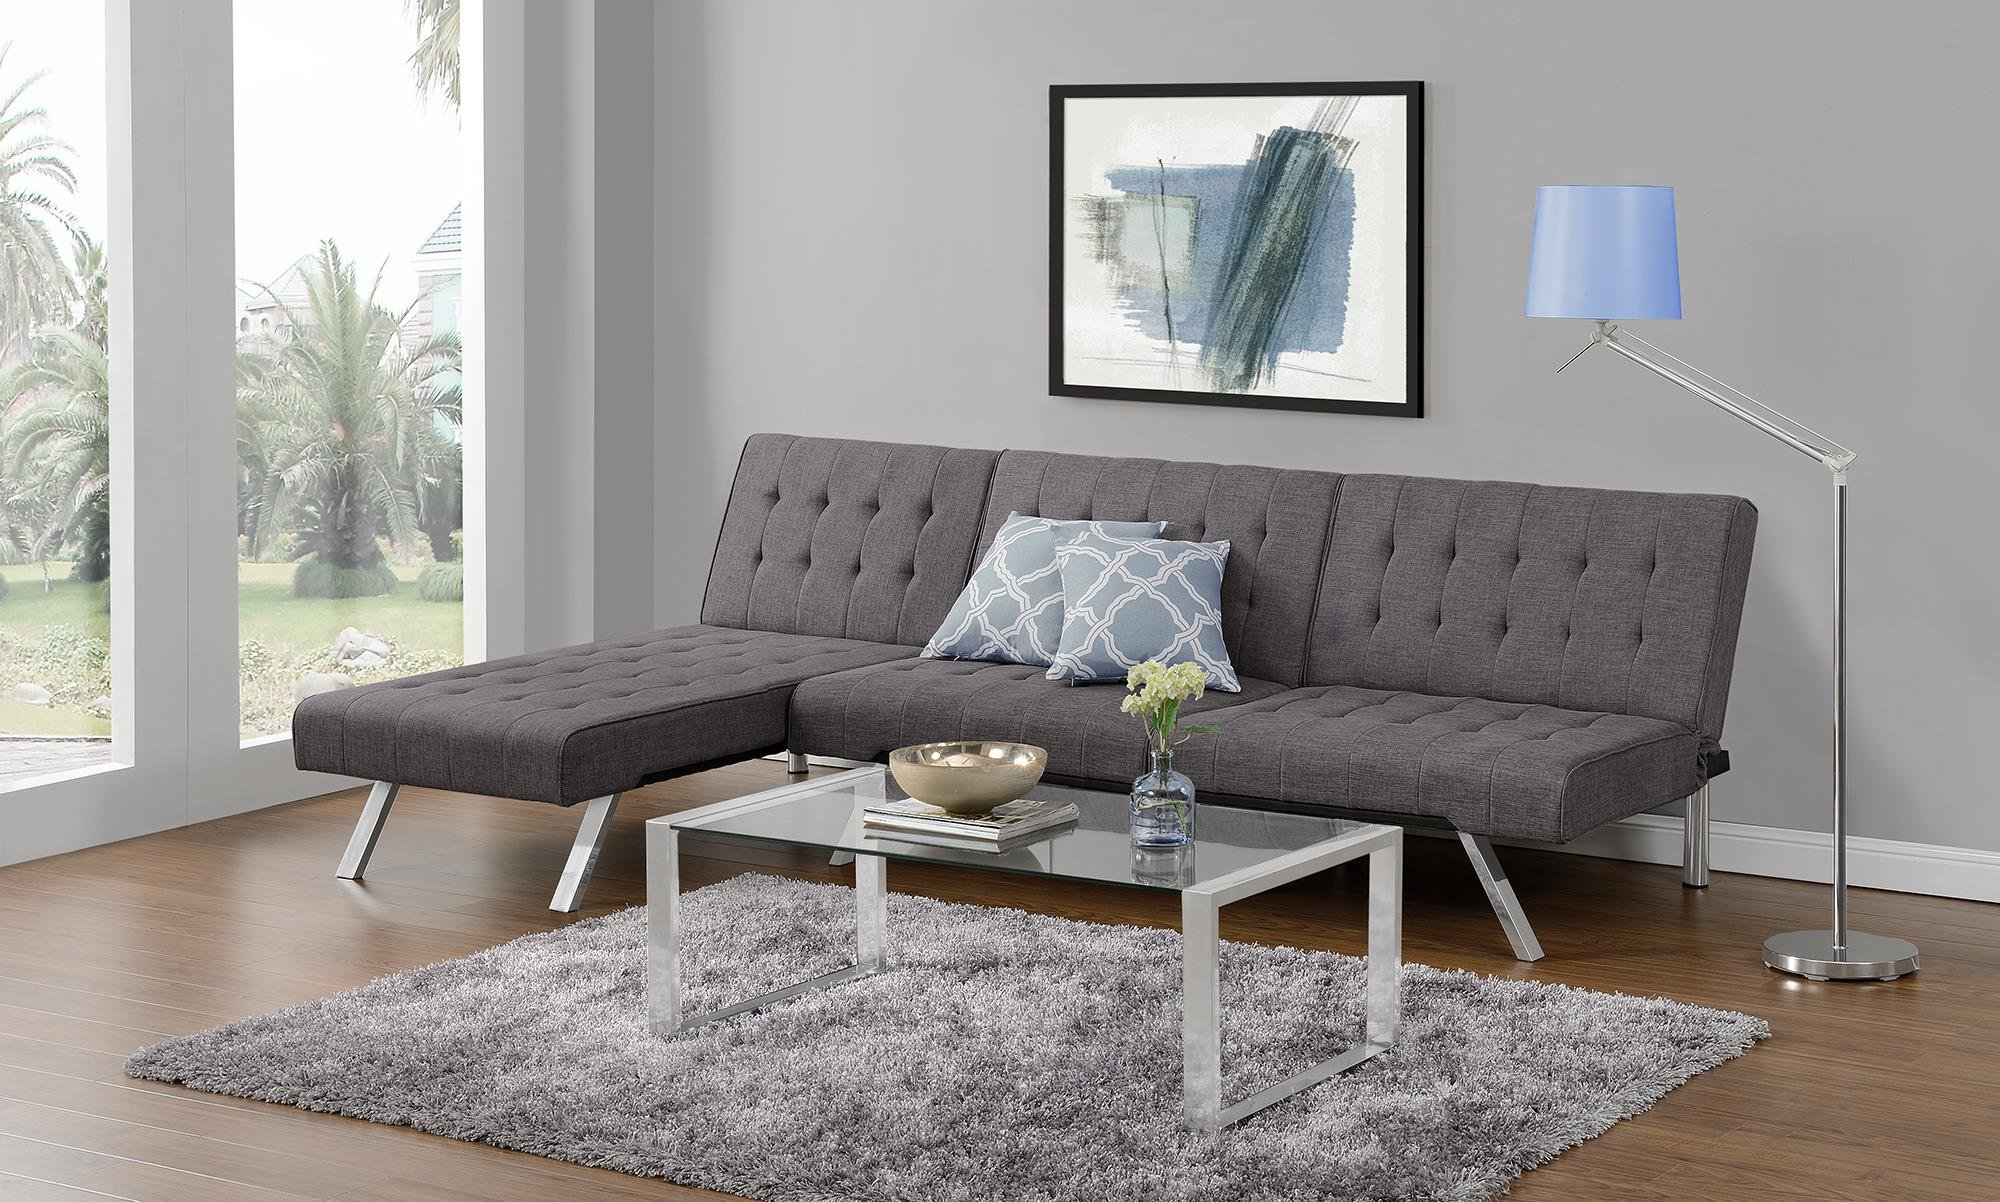 DHP Emily Linen Chaise Lounger, Stylish Design with Chrome Legs, Grey by DHP (Image #5)